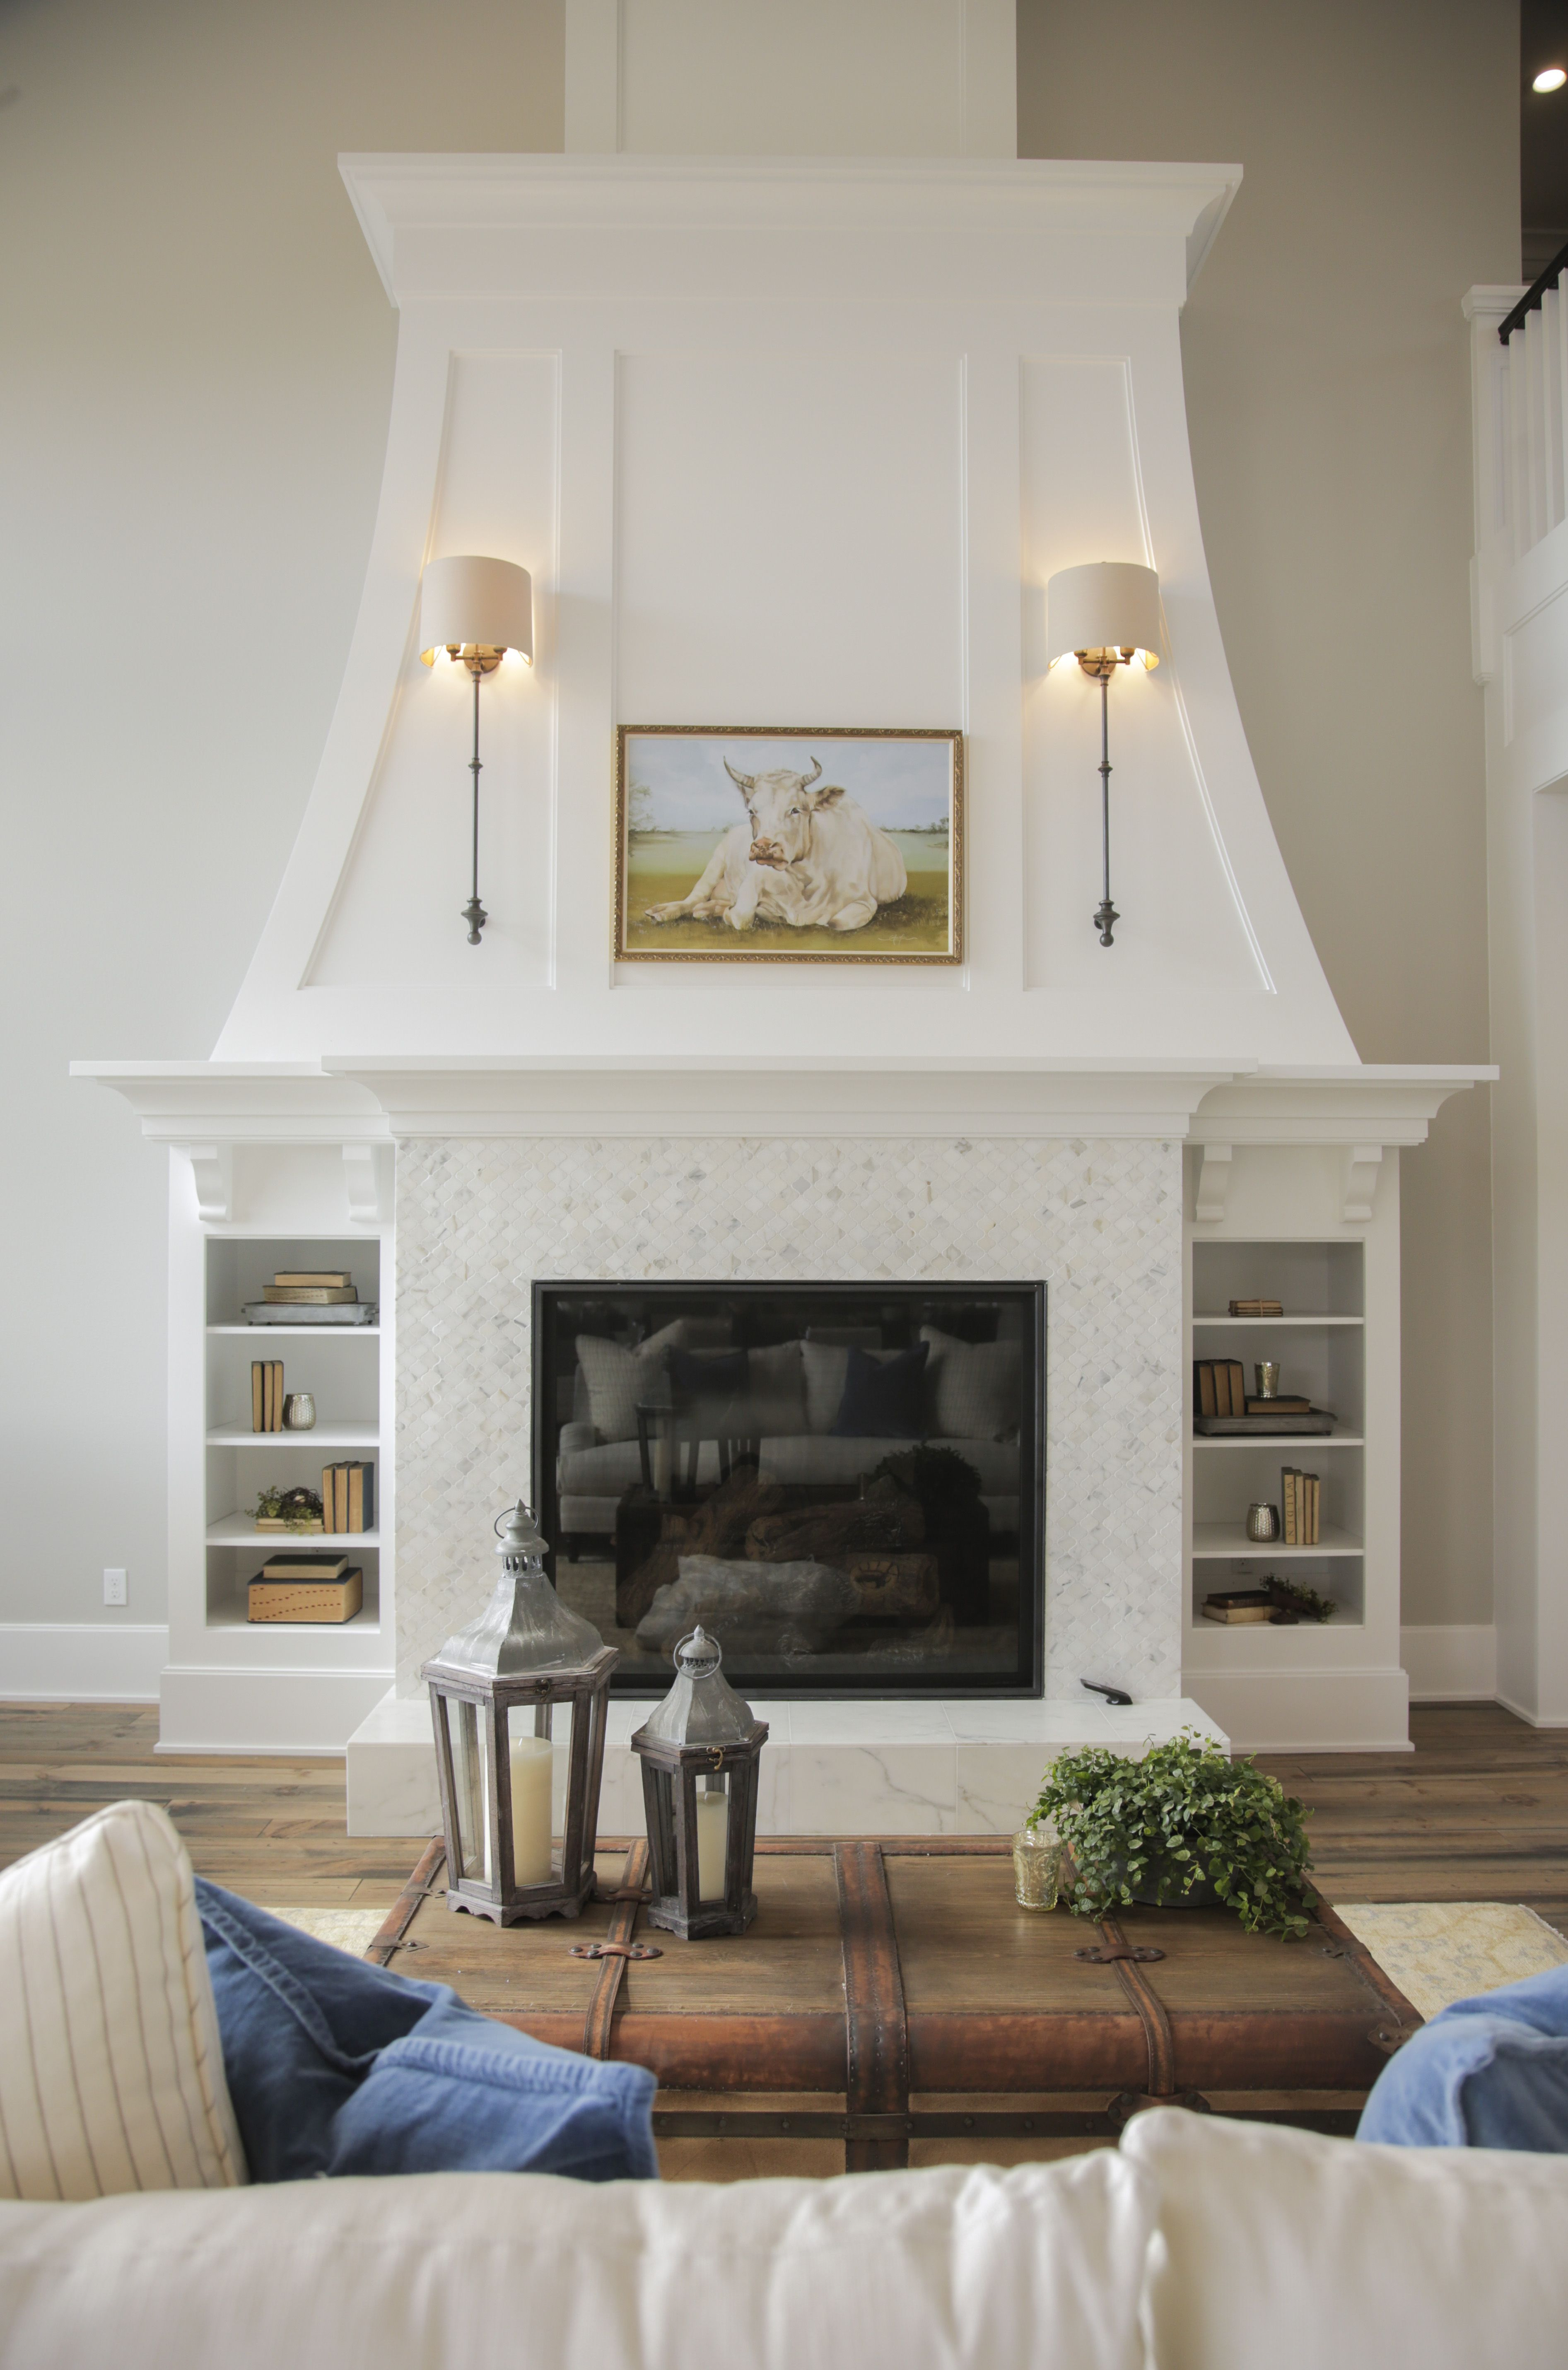 Farmhouse Fireplace Living Room Designs Html on great living room designs, mediterranean living room designs, castle living room designs, vintage living room designs, craftsman living room designs, brownstone living room designs, rustic living room designs, family living room designs, kitchen living room designs, lodge living room designs, english living room designs, garage living room designs, southern living room designs, log living room designs, farmhouse room colors, southwestern living room designs, apartment living room designs, contemporary living room designs, country living room designs, home living room designs,